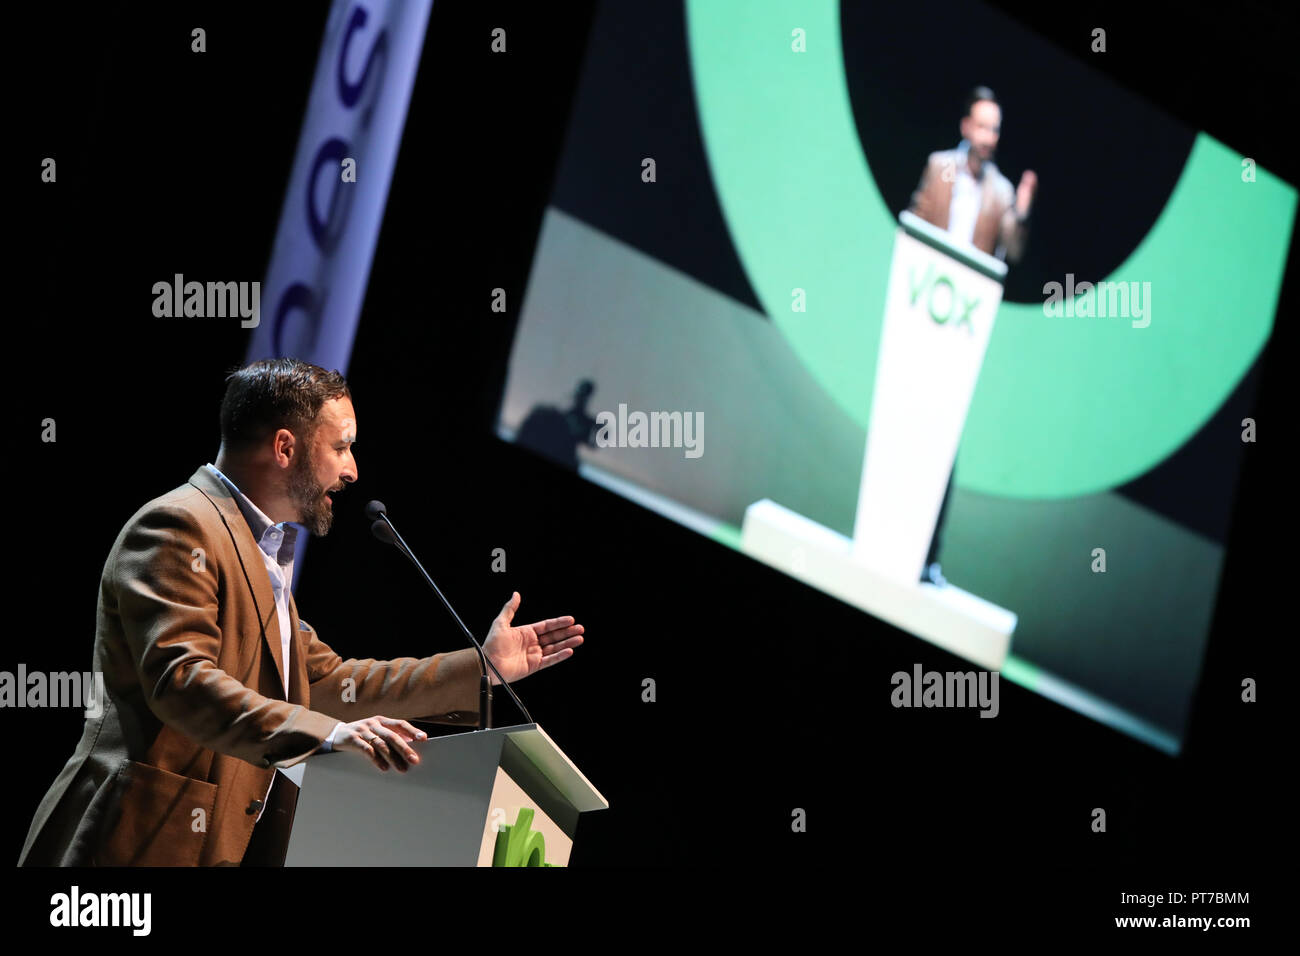 Madrid, Spain. 7th Oct 2018. SANTIAGO ABASCAL, the national president of VOX, participating in the event. The far-right political party Vox has crowded this Sunday the 'Palacio de Vistalegre' in a massive event that has attended, according to the organisers, 10,000 people, and in which they have presented their 100 urgent measures for Spain on Oct 7, 2018 in Madrid, Spain Credit: Jesús Hellin/Alamy Live News - Stock Image